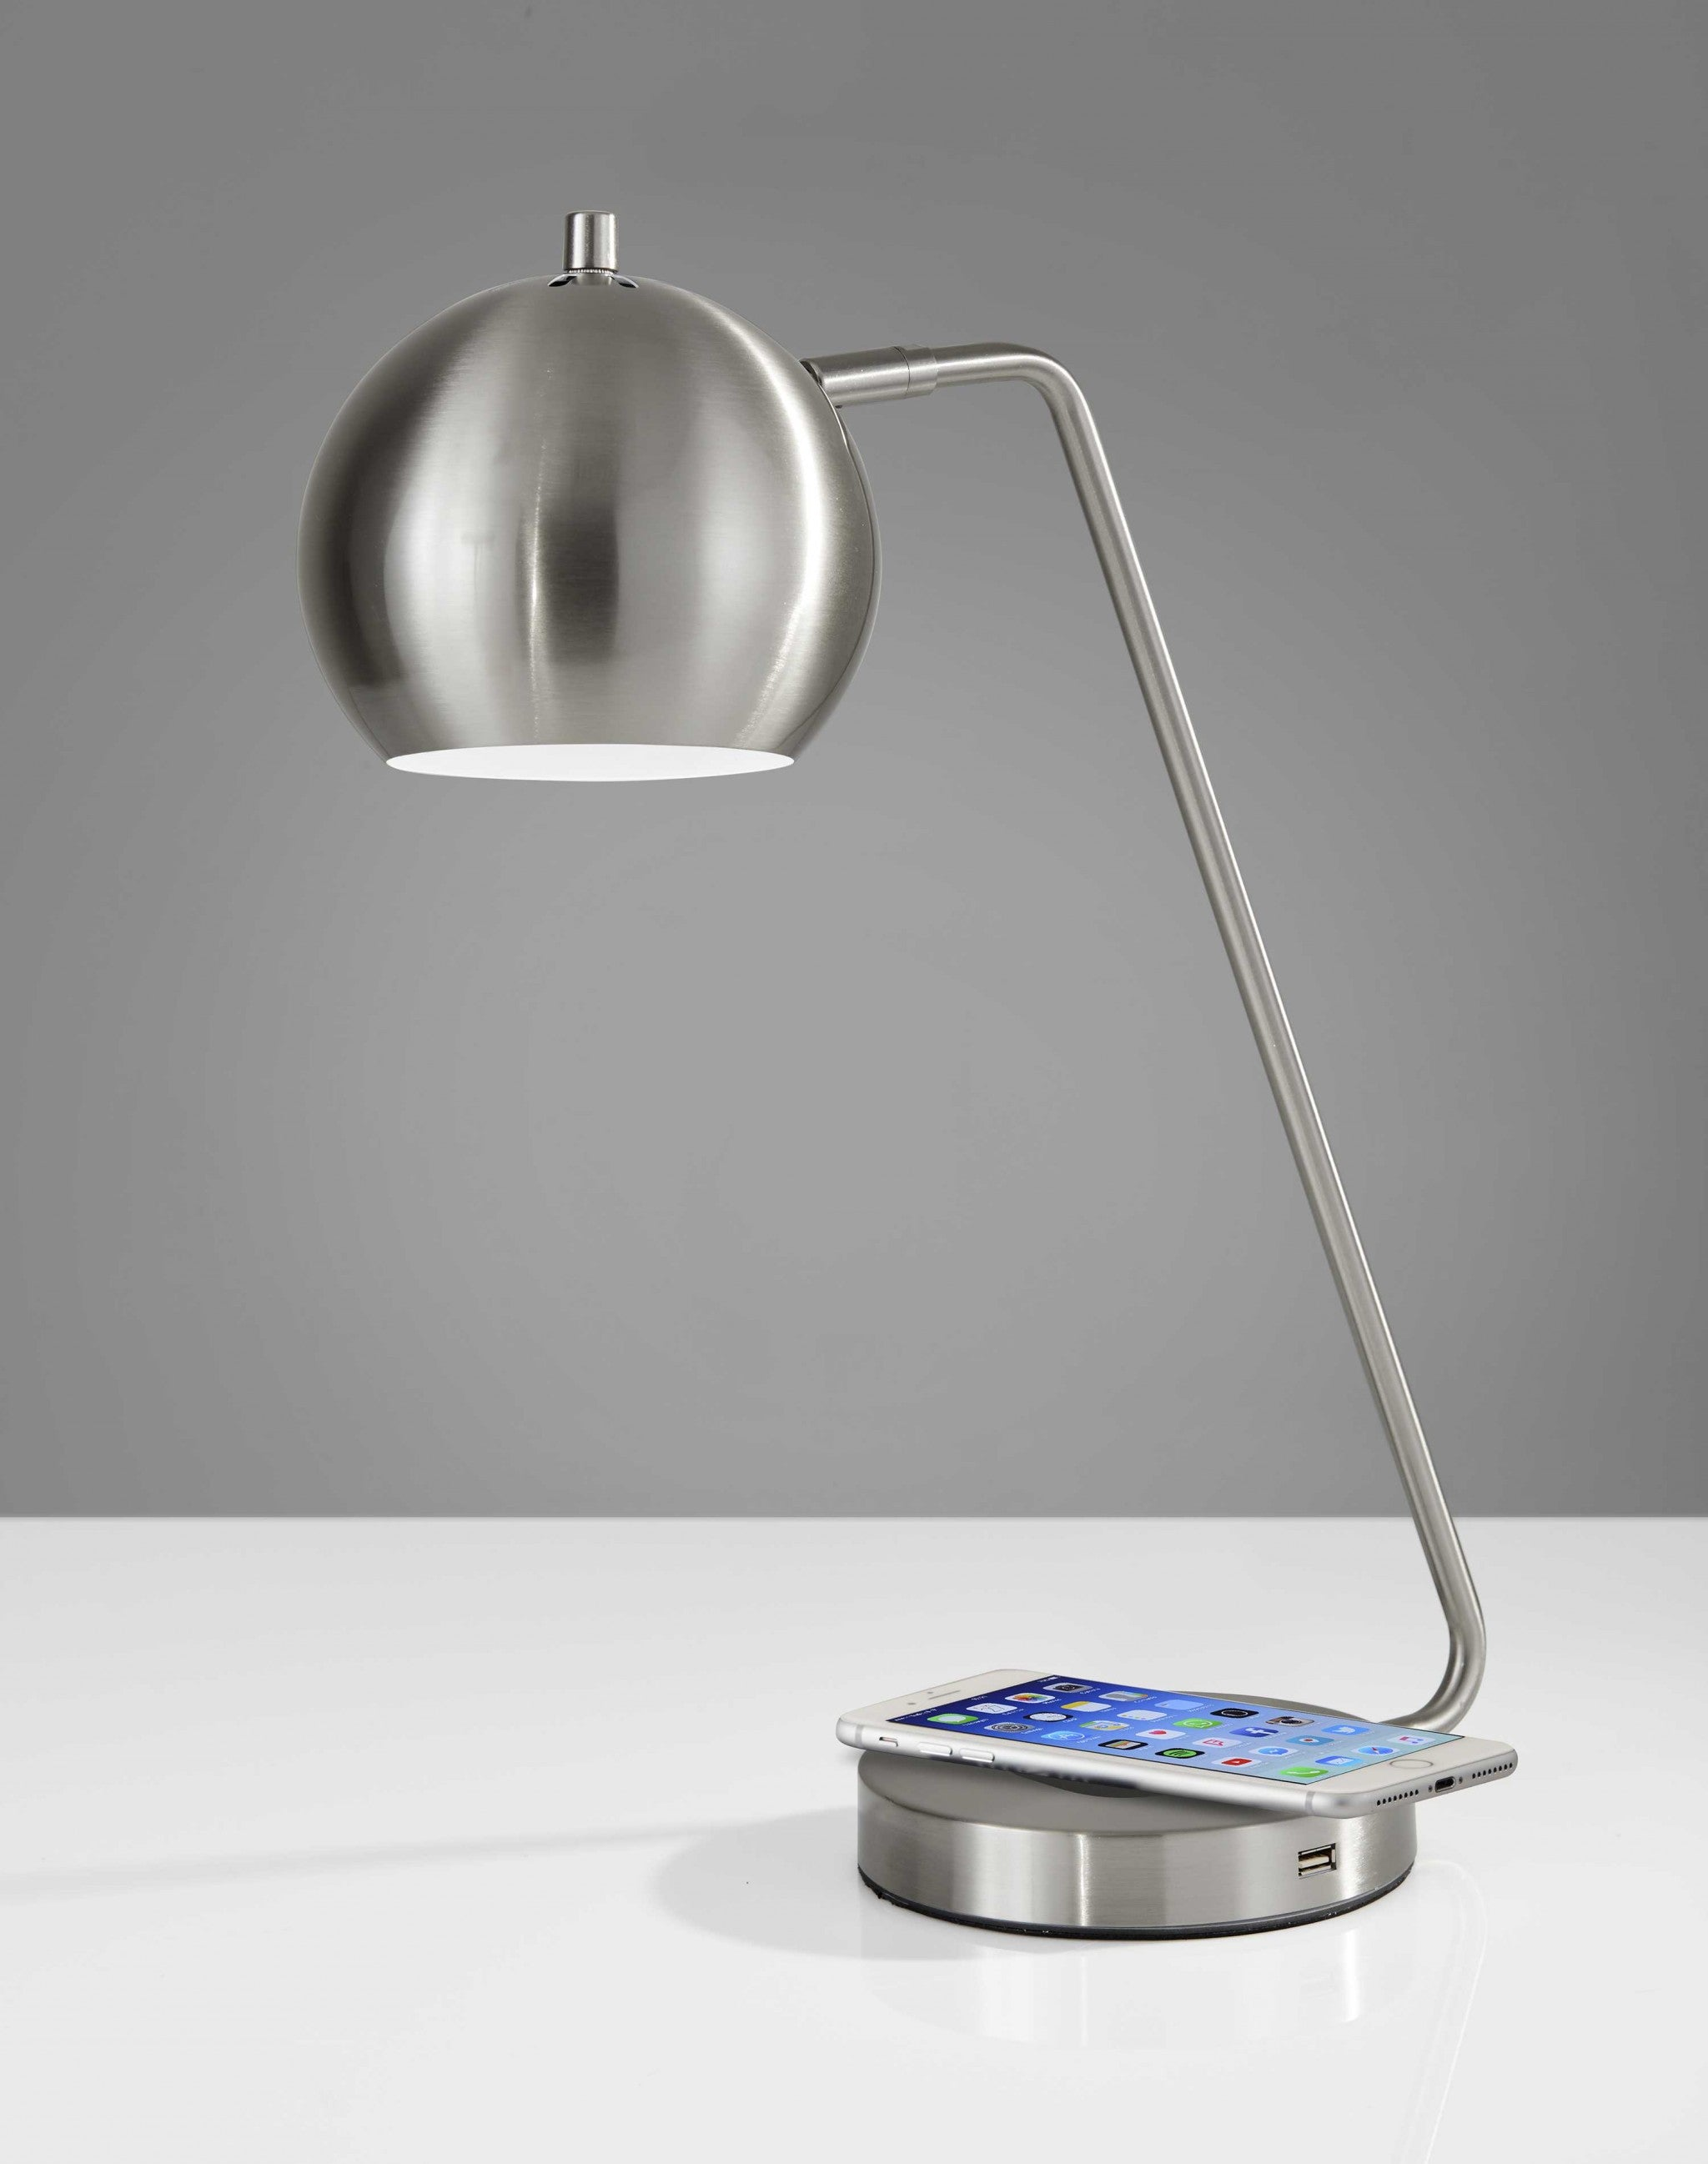 Retro Brushed Steel Wireless Charging Station Desk Lamp